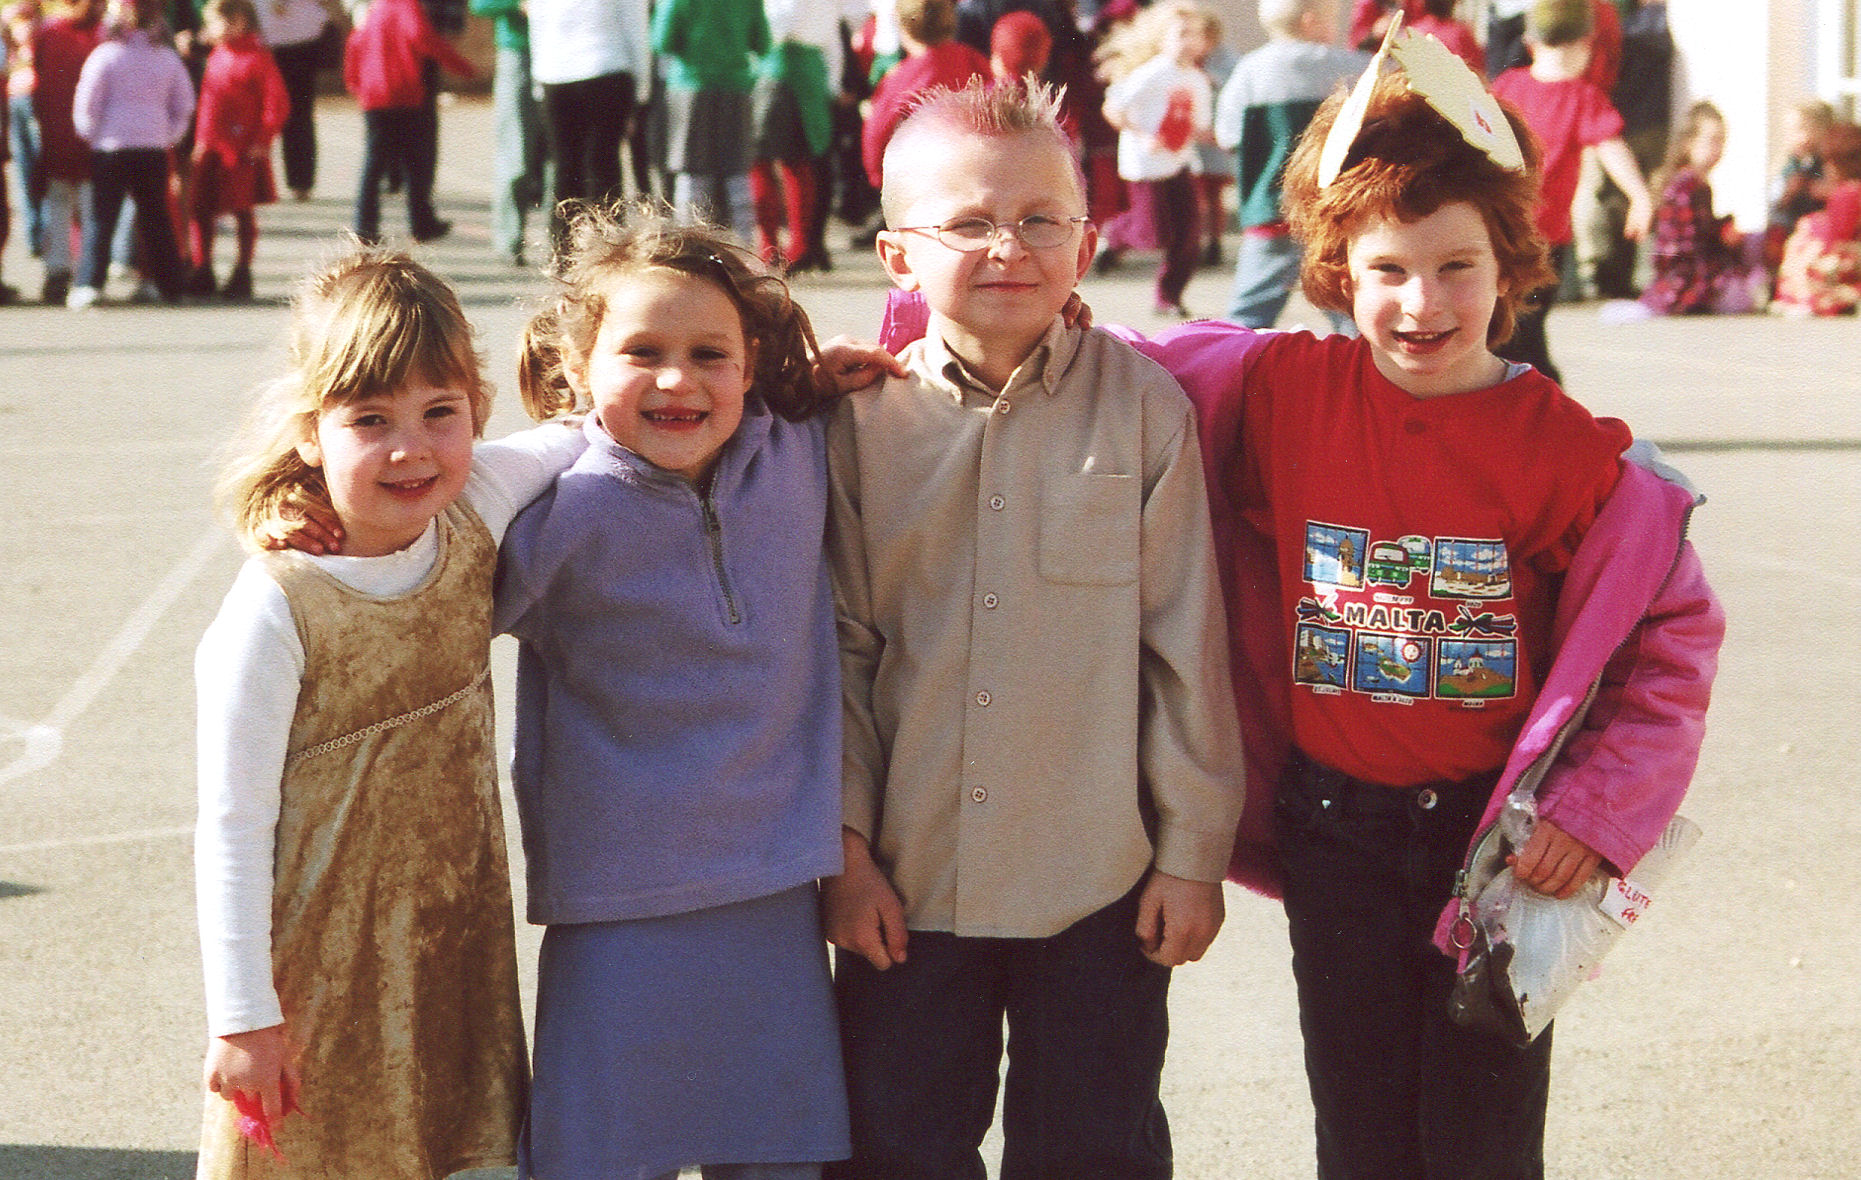 Mounting excitement for a memorable day at Chagford Primary School in March 2003.